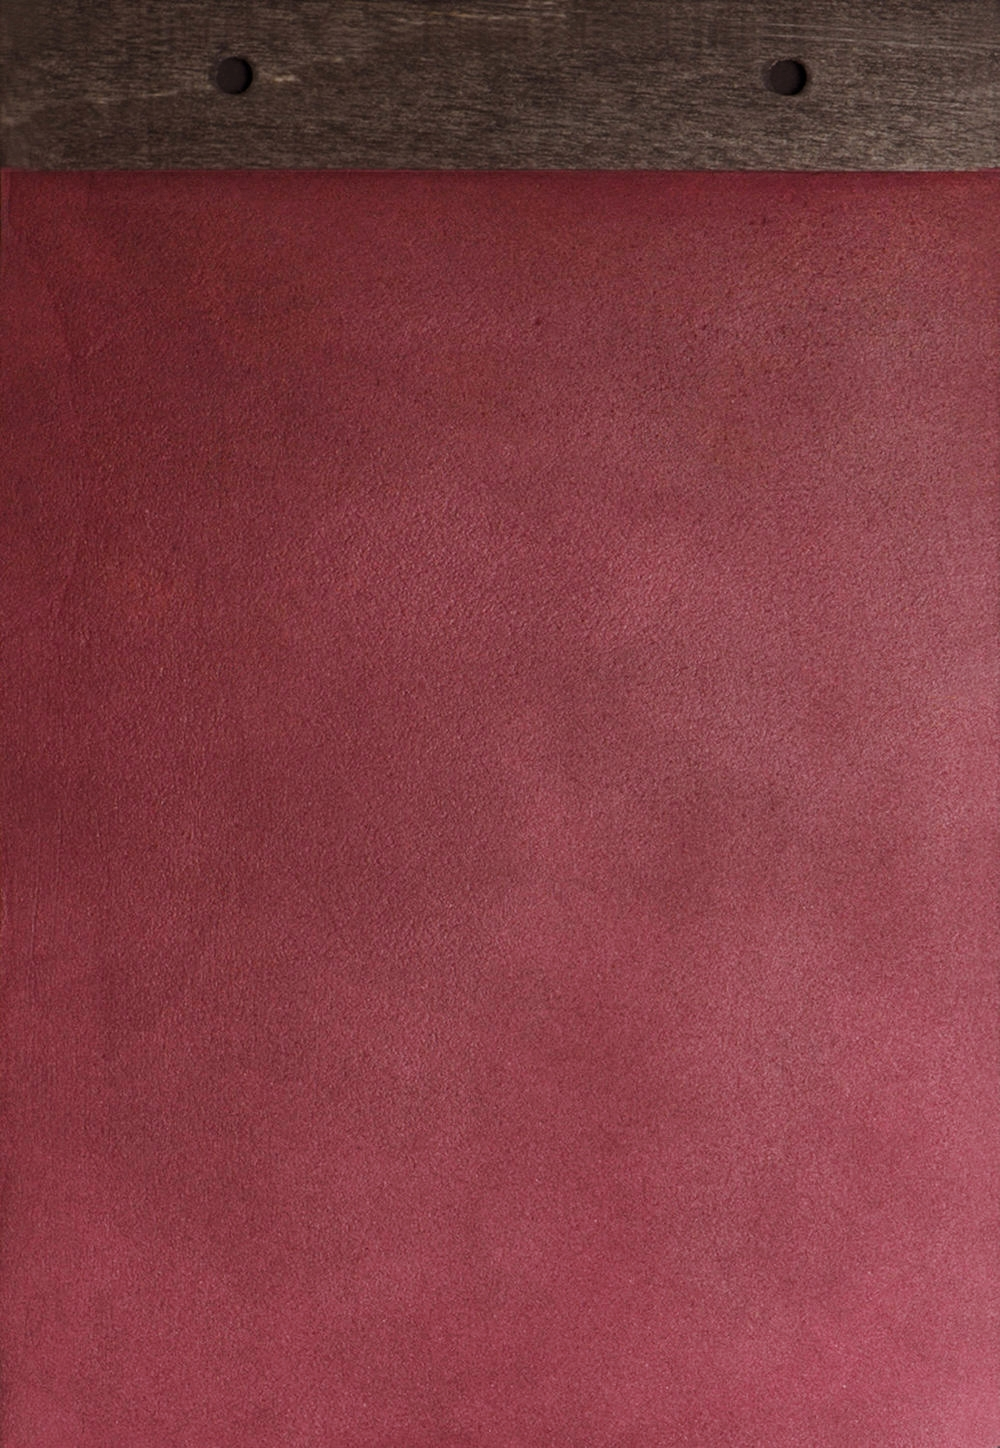 Image of   DETALE KC14 Raw - Burgundy